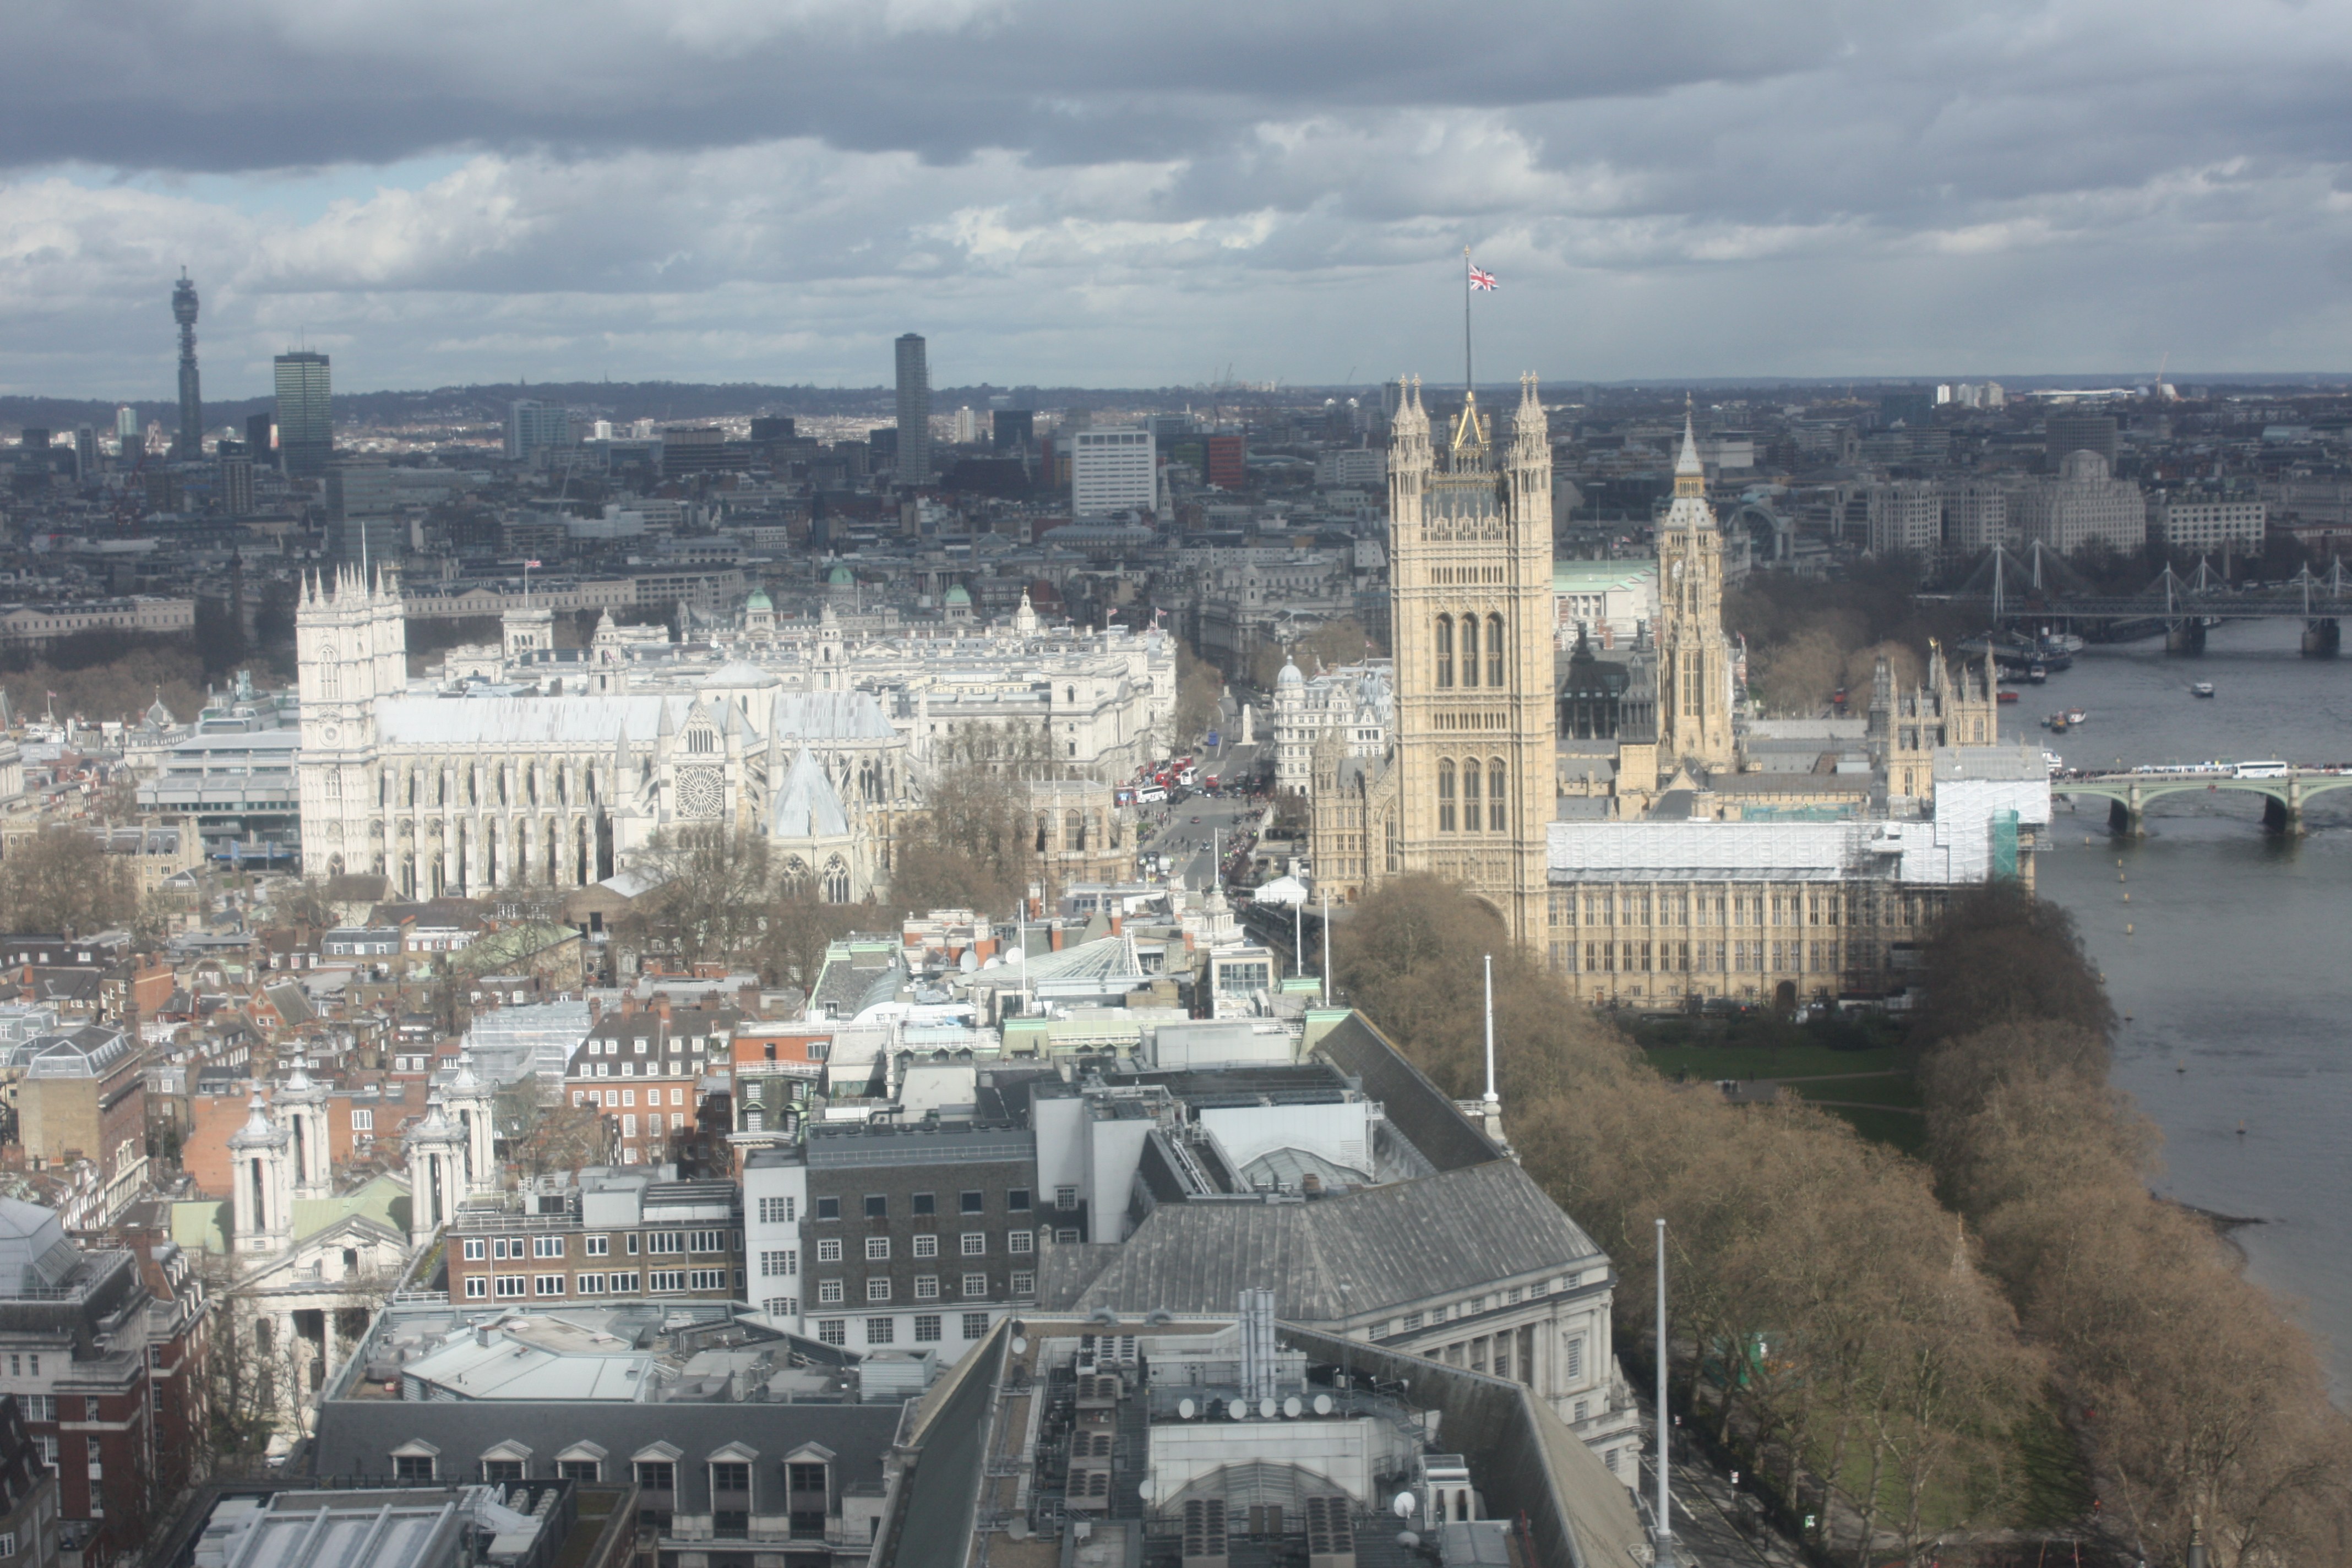 Houses of Parliament, Big Ben and Westminster Abbey as seen from the Invisalign conference